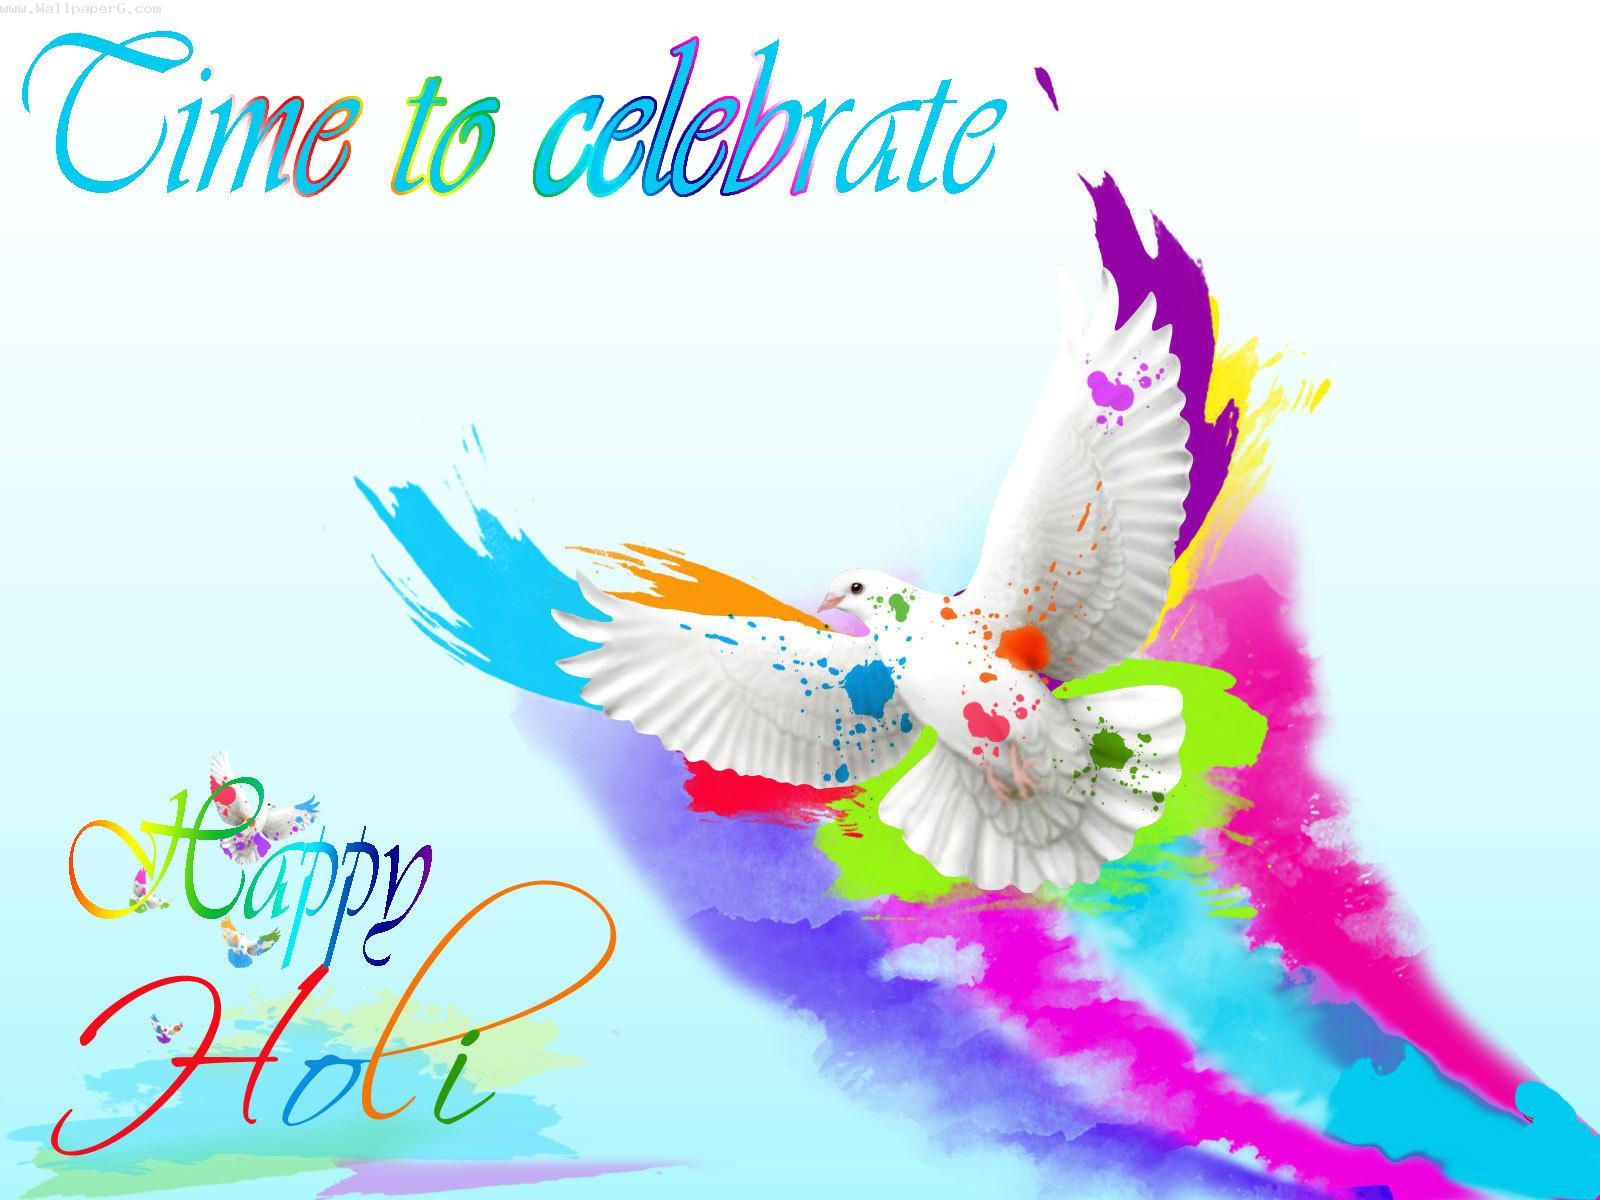 Time to celebrate holi